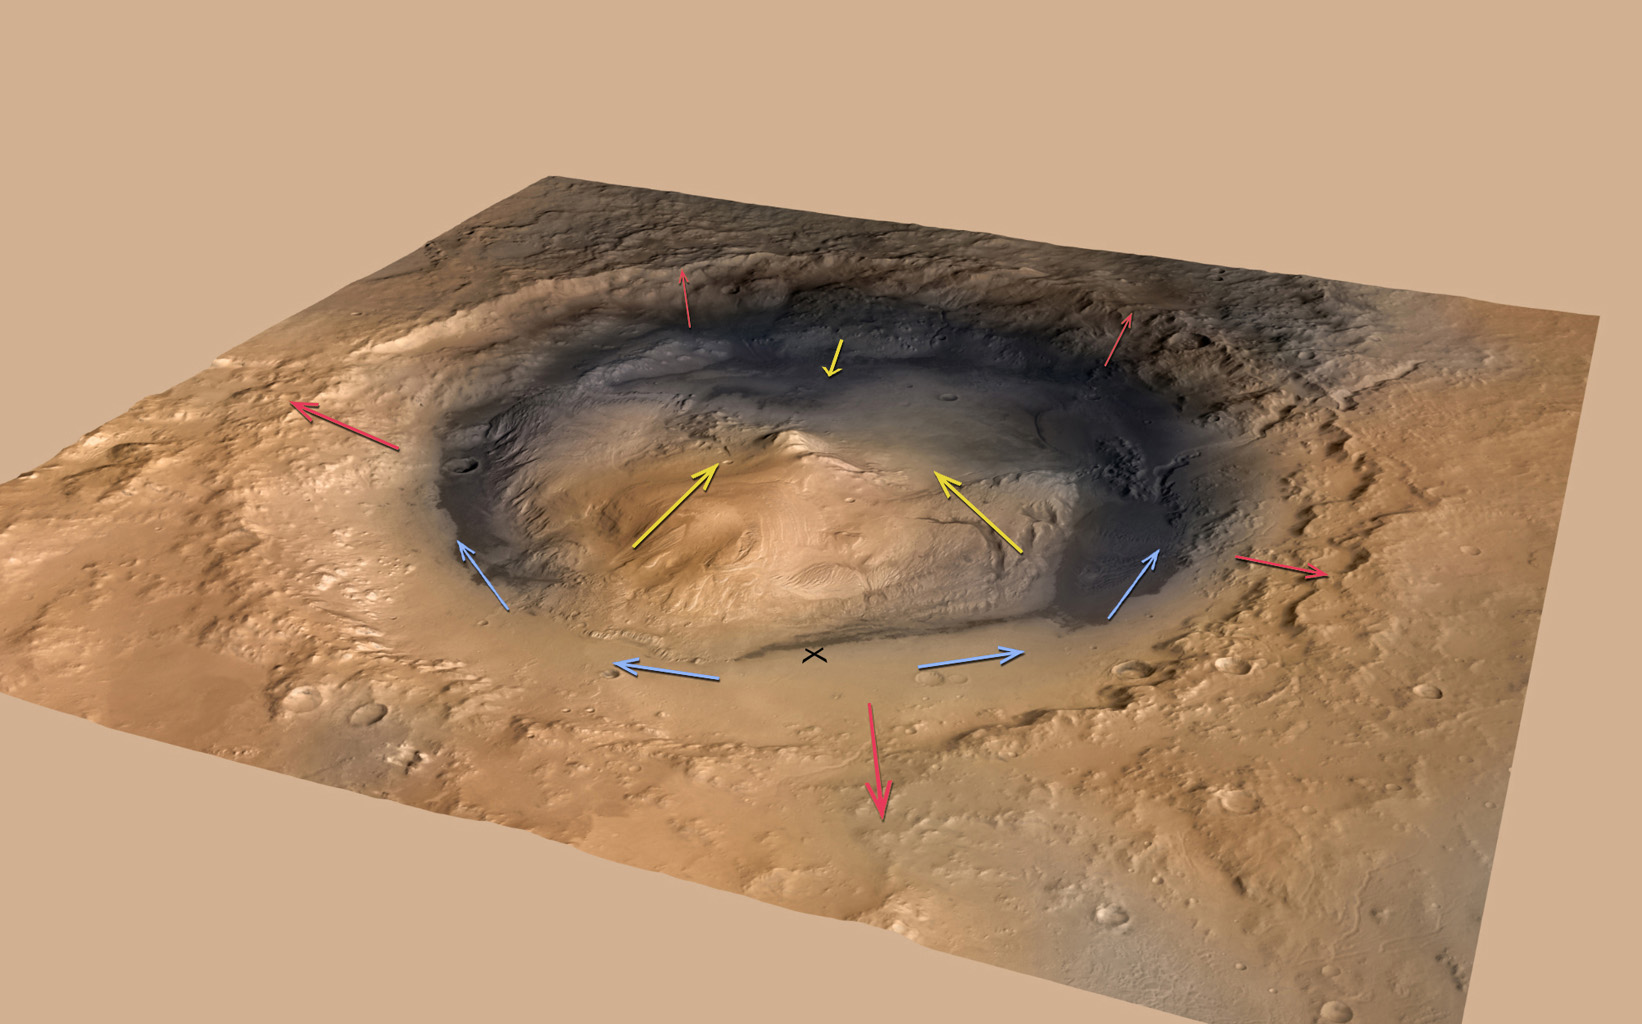 This graphic shows the pattern of winds predicted to be swirling around and inside Gale Crater, where NASA's Curiosity rover landed on Mars. Modeling the winds gives scientists a context for the data from Curiosity's Rover Environmental Monitoring Station